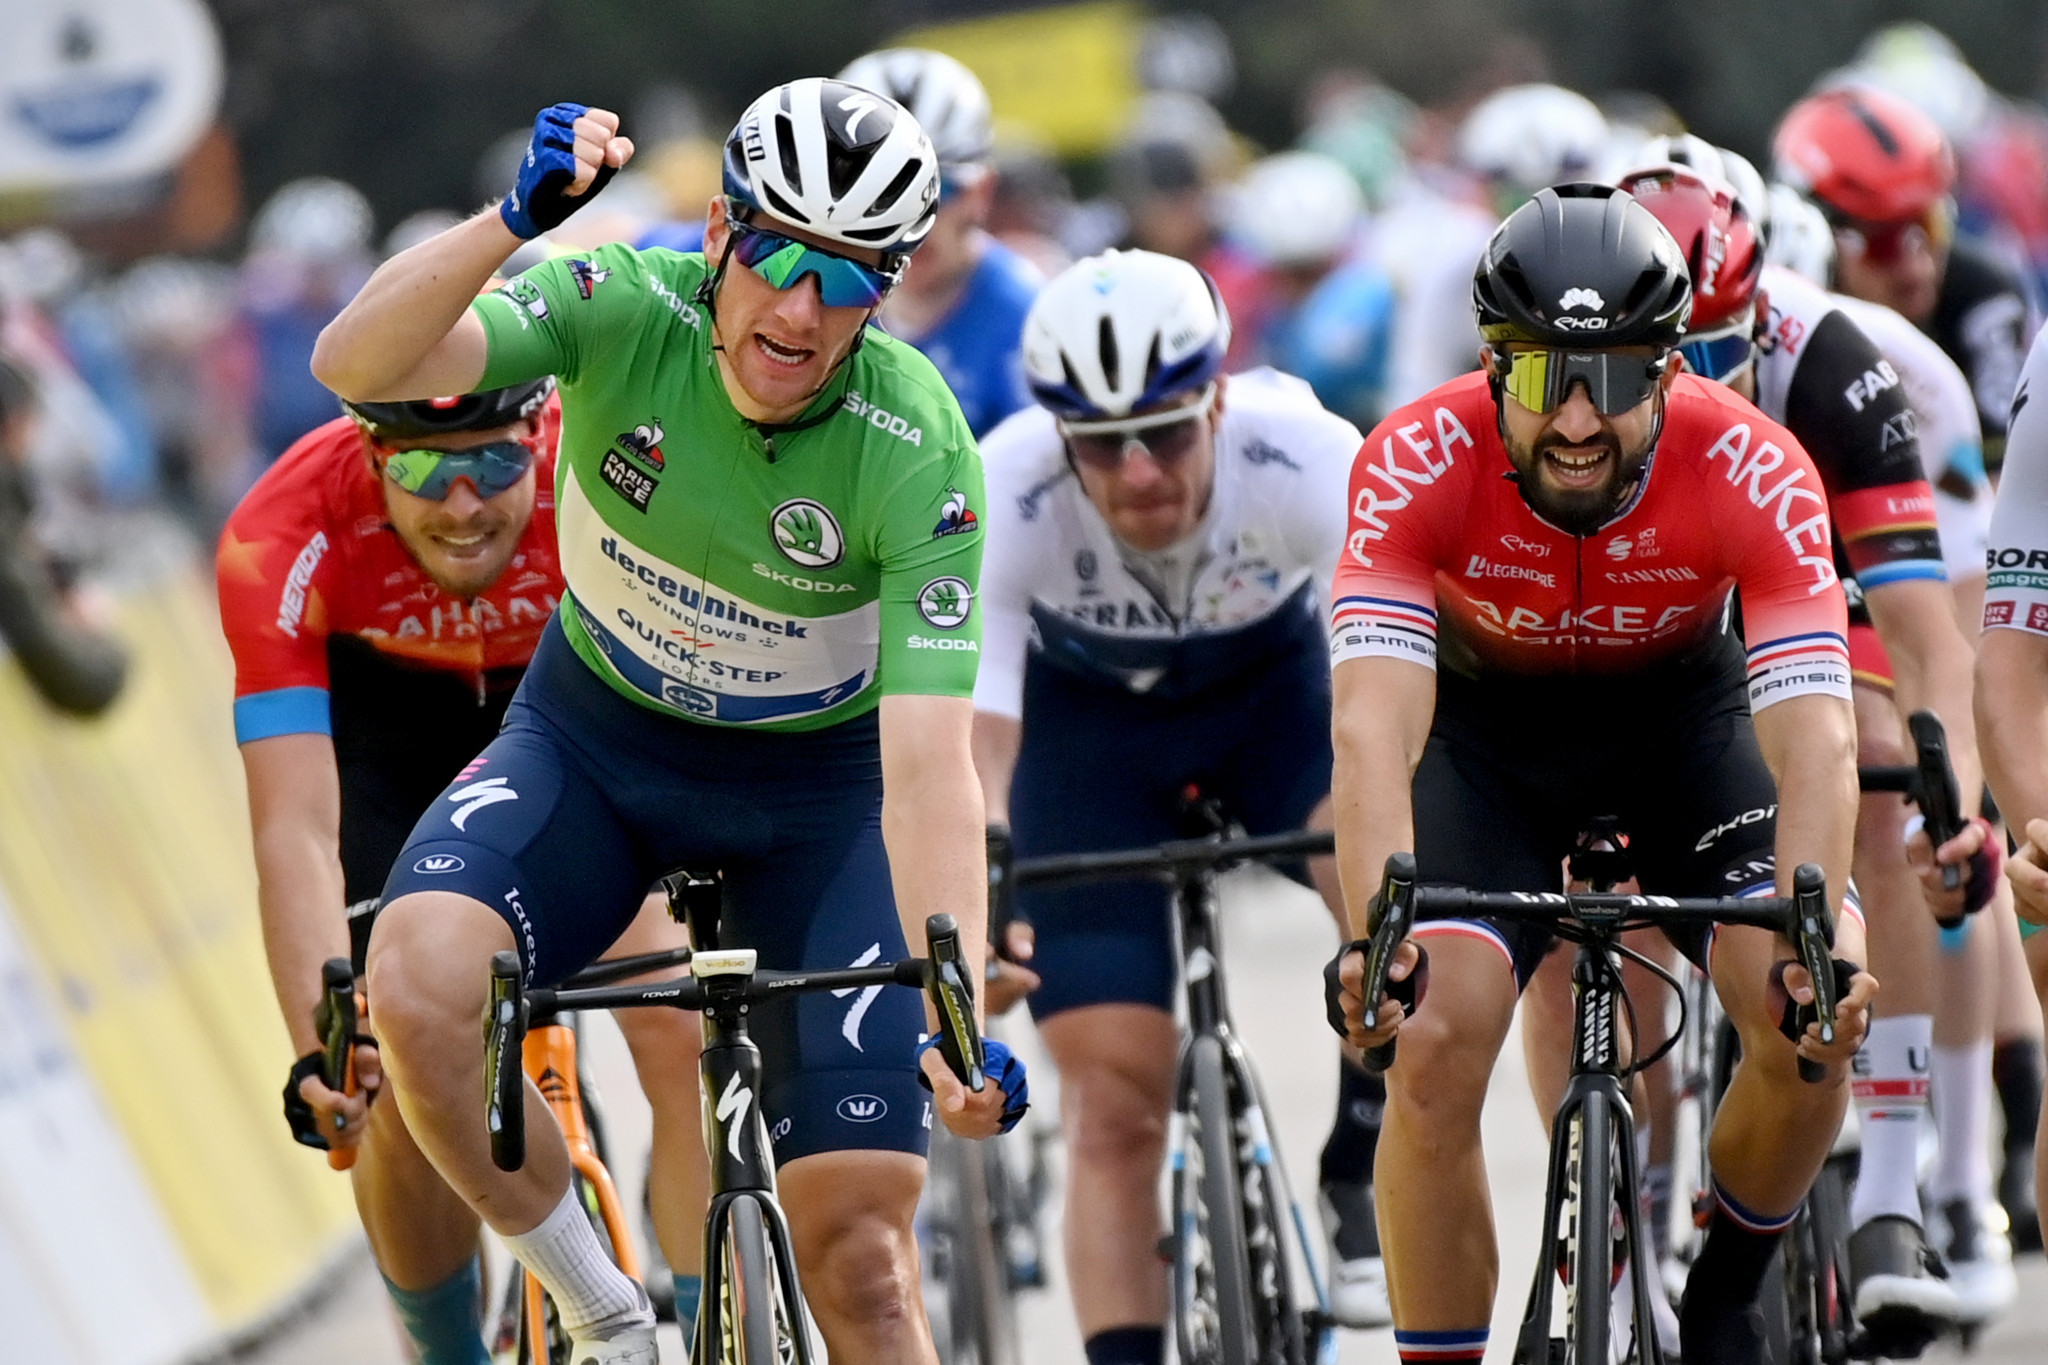 Bennett secures second win of 2021 Paris-Nice with stage five victory